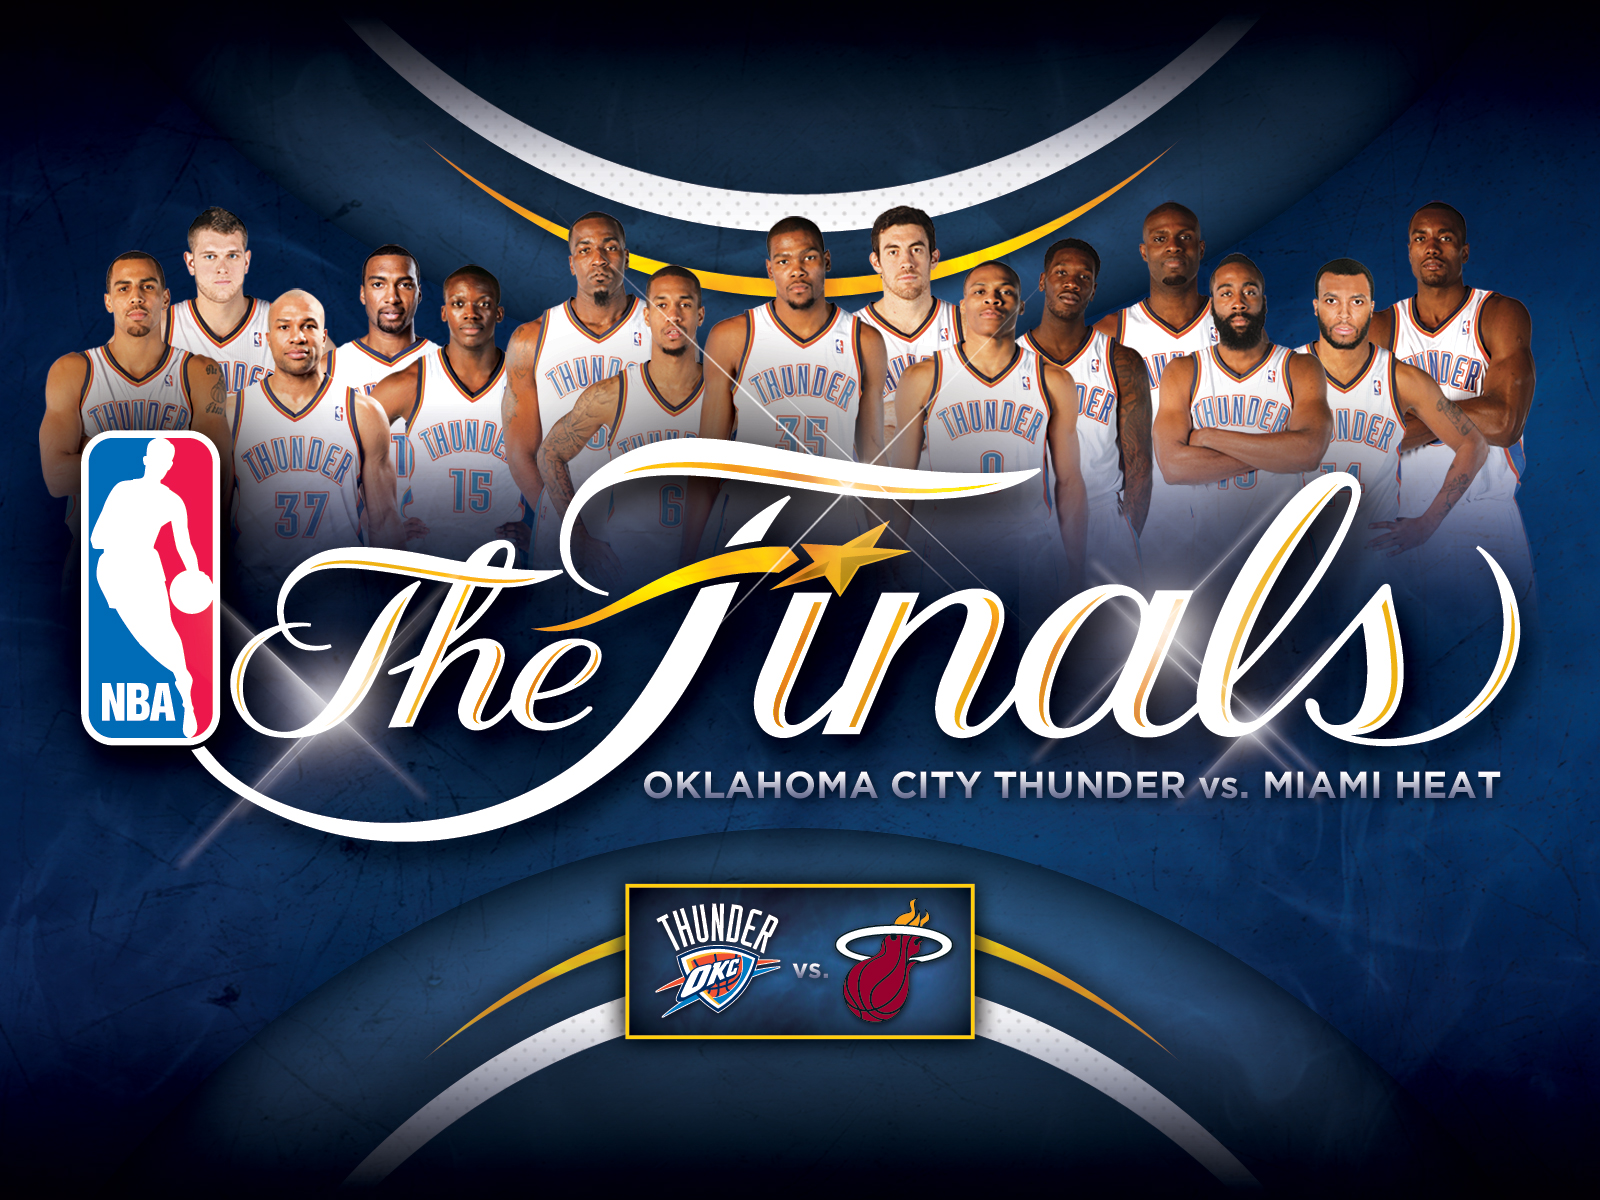 NBA Finals Downloads | THE OFFICIAL SITE OF THE OKLAHOMA CITY THUNDER